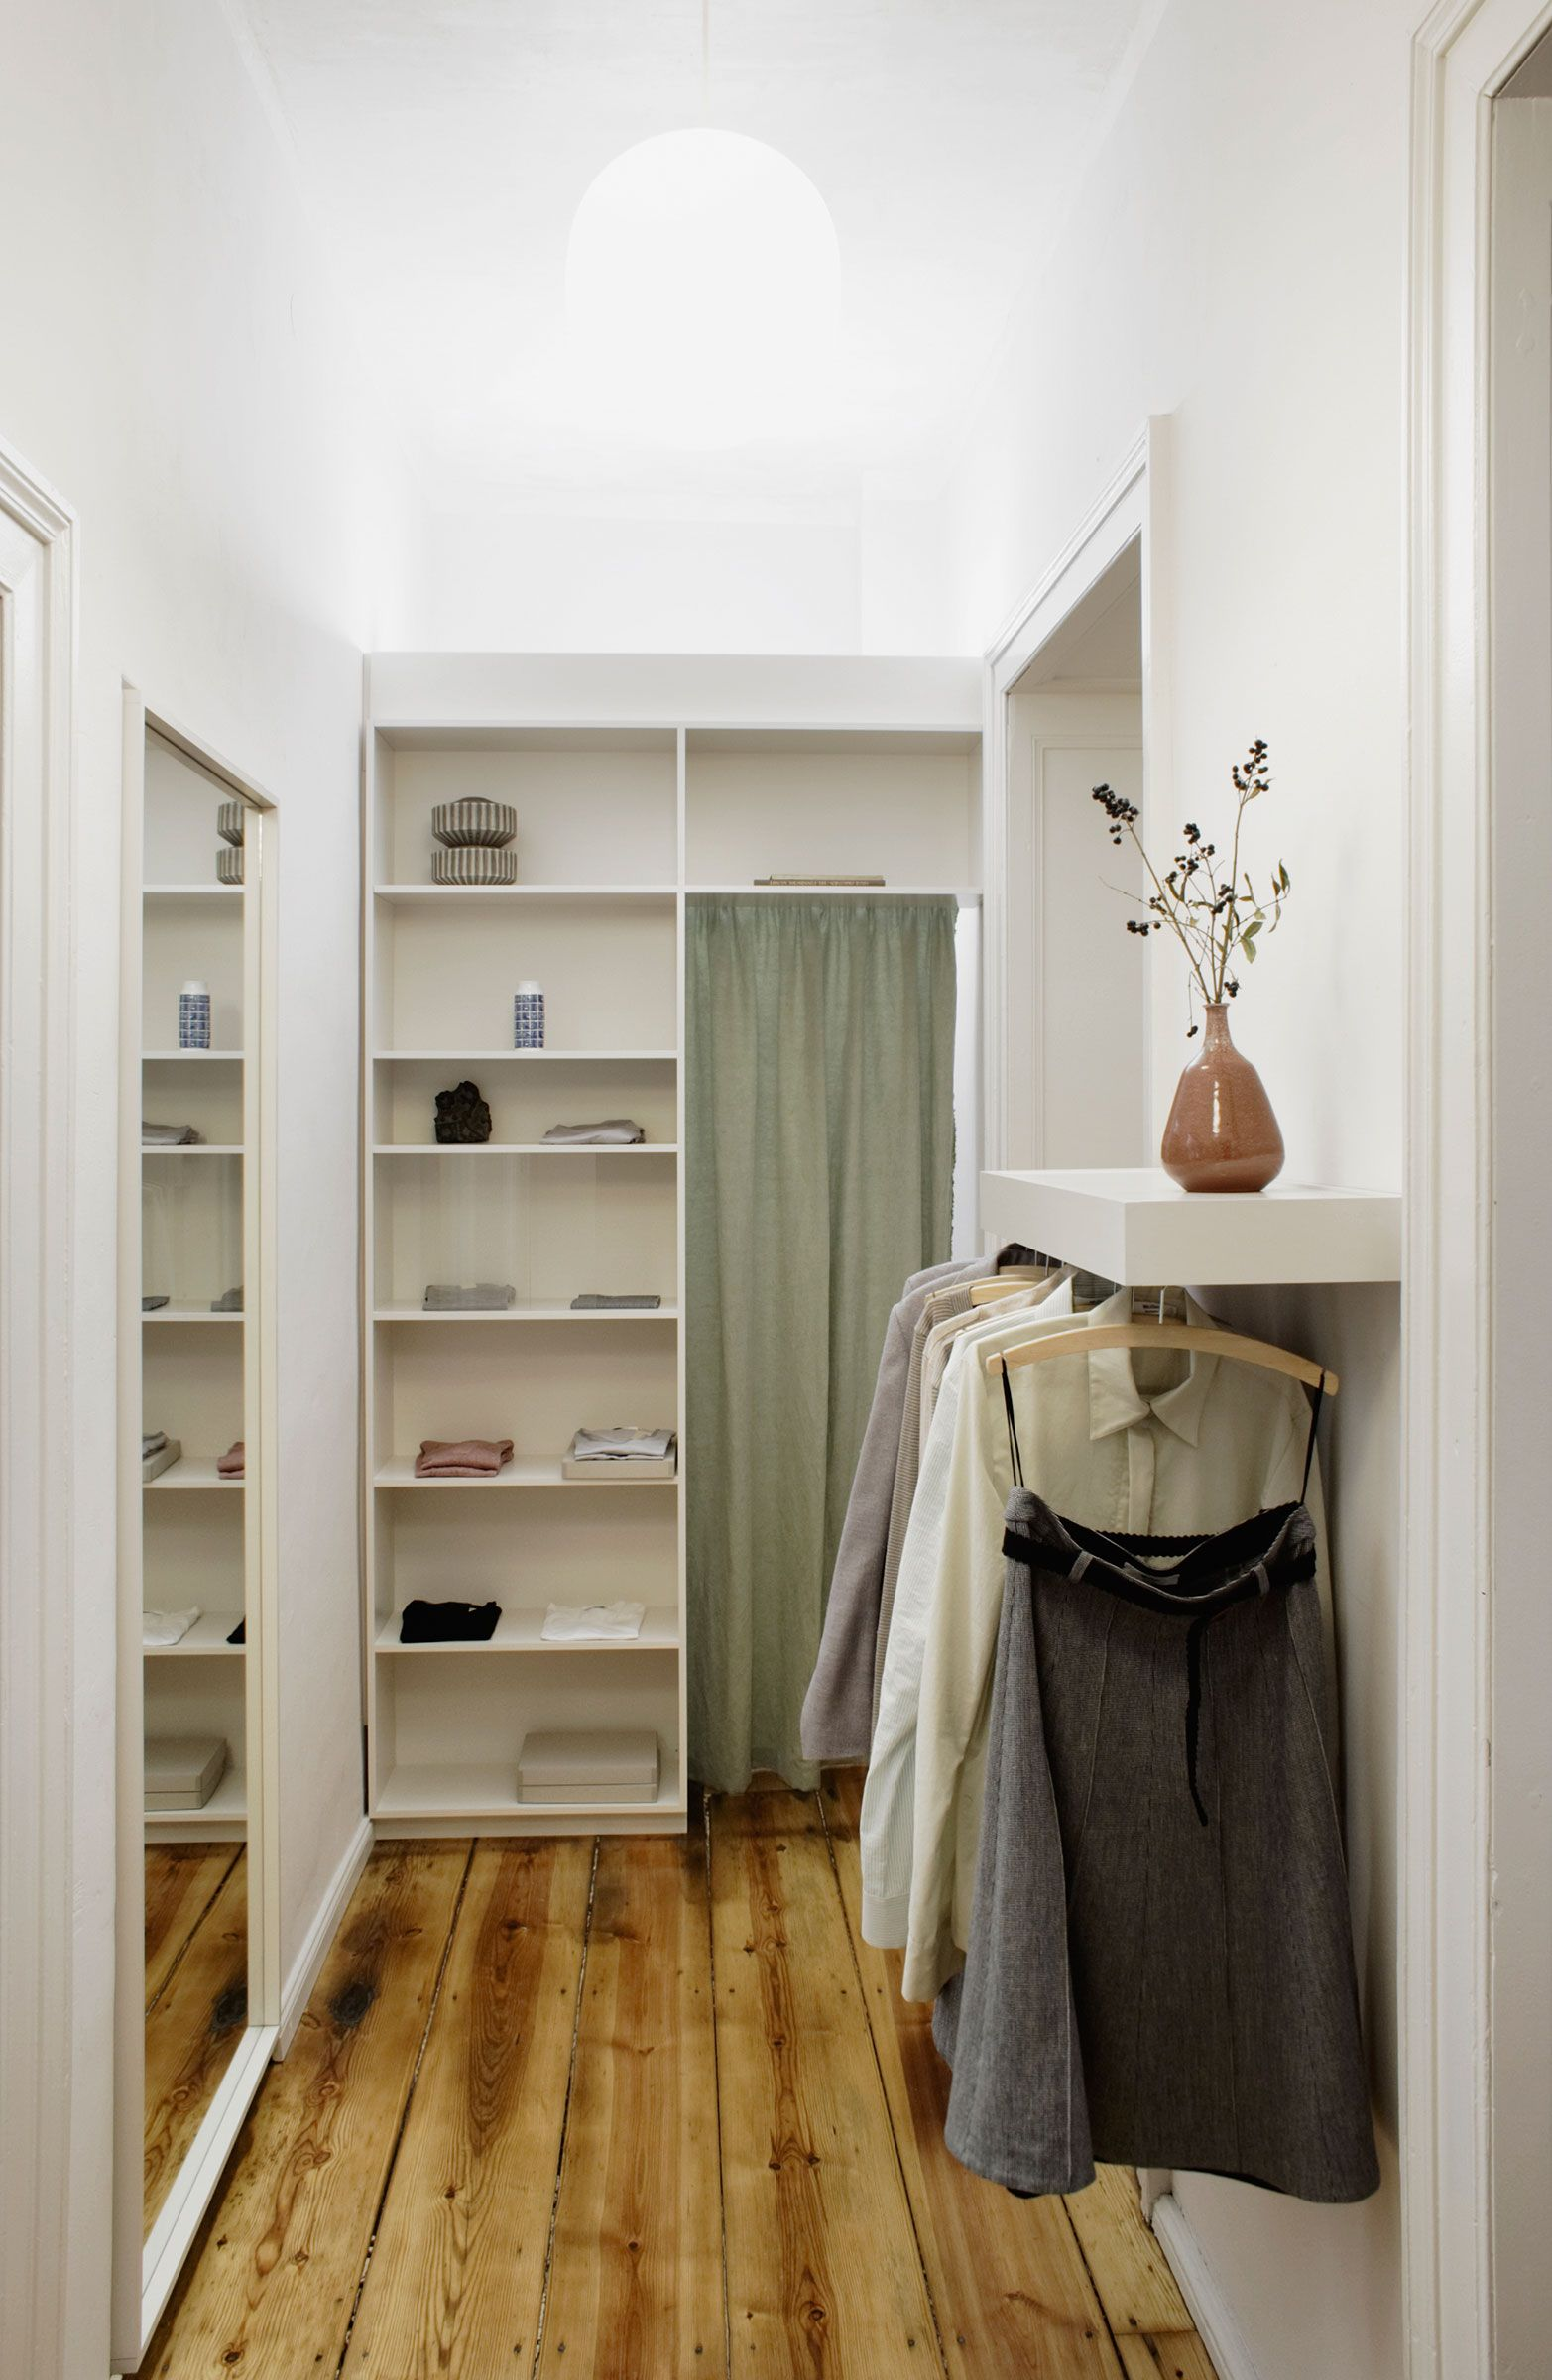 Corridor Wardrobe Under Shelf Ilke Penzlien Billy Regal Vorhang